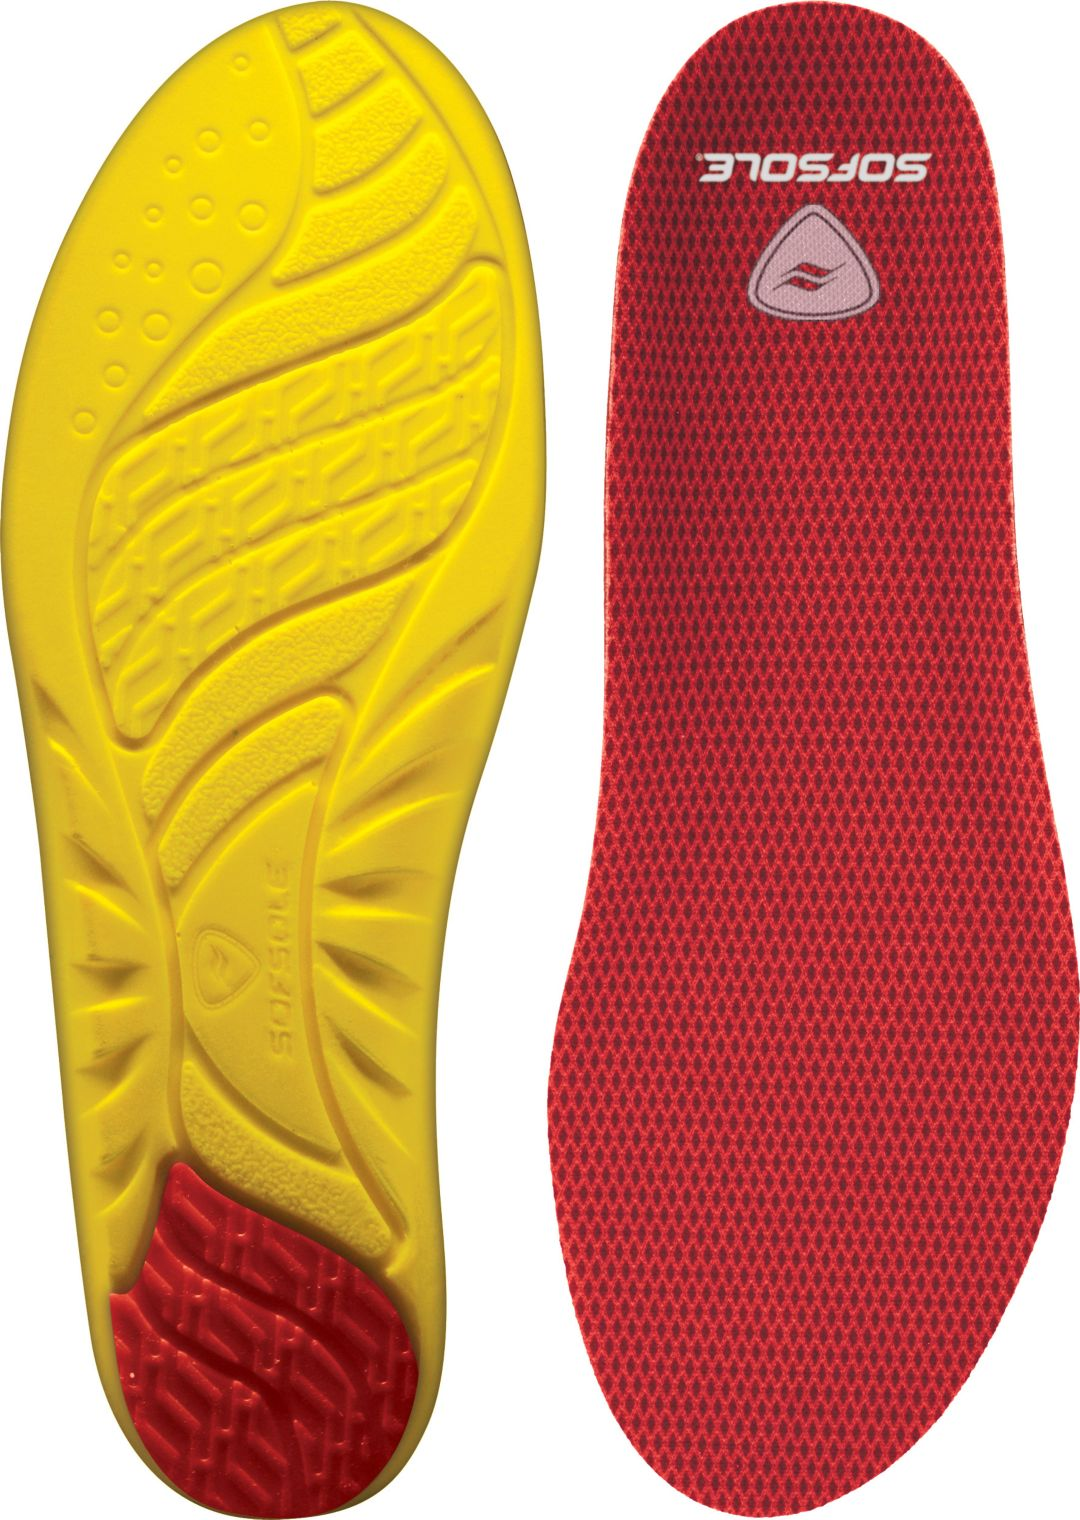 948f481407c4ac Sof Sole Arch Insole 1